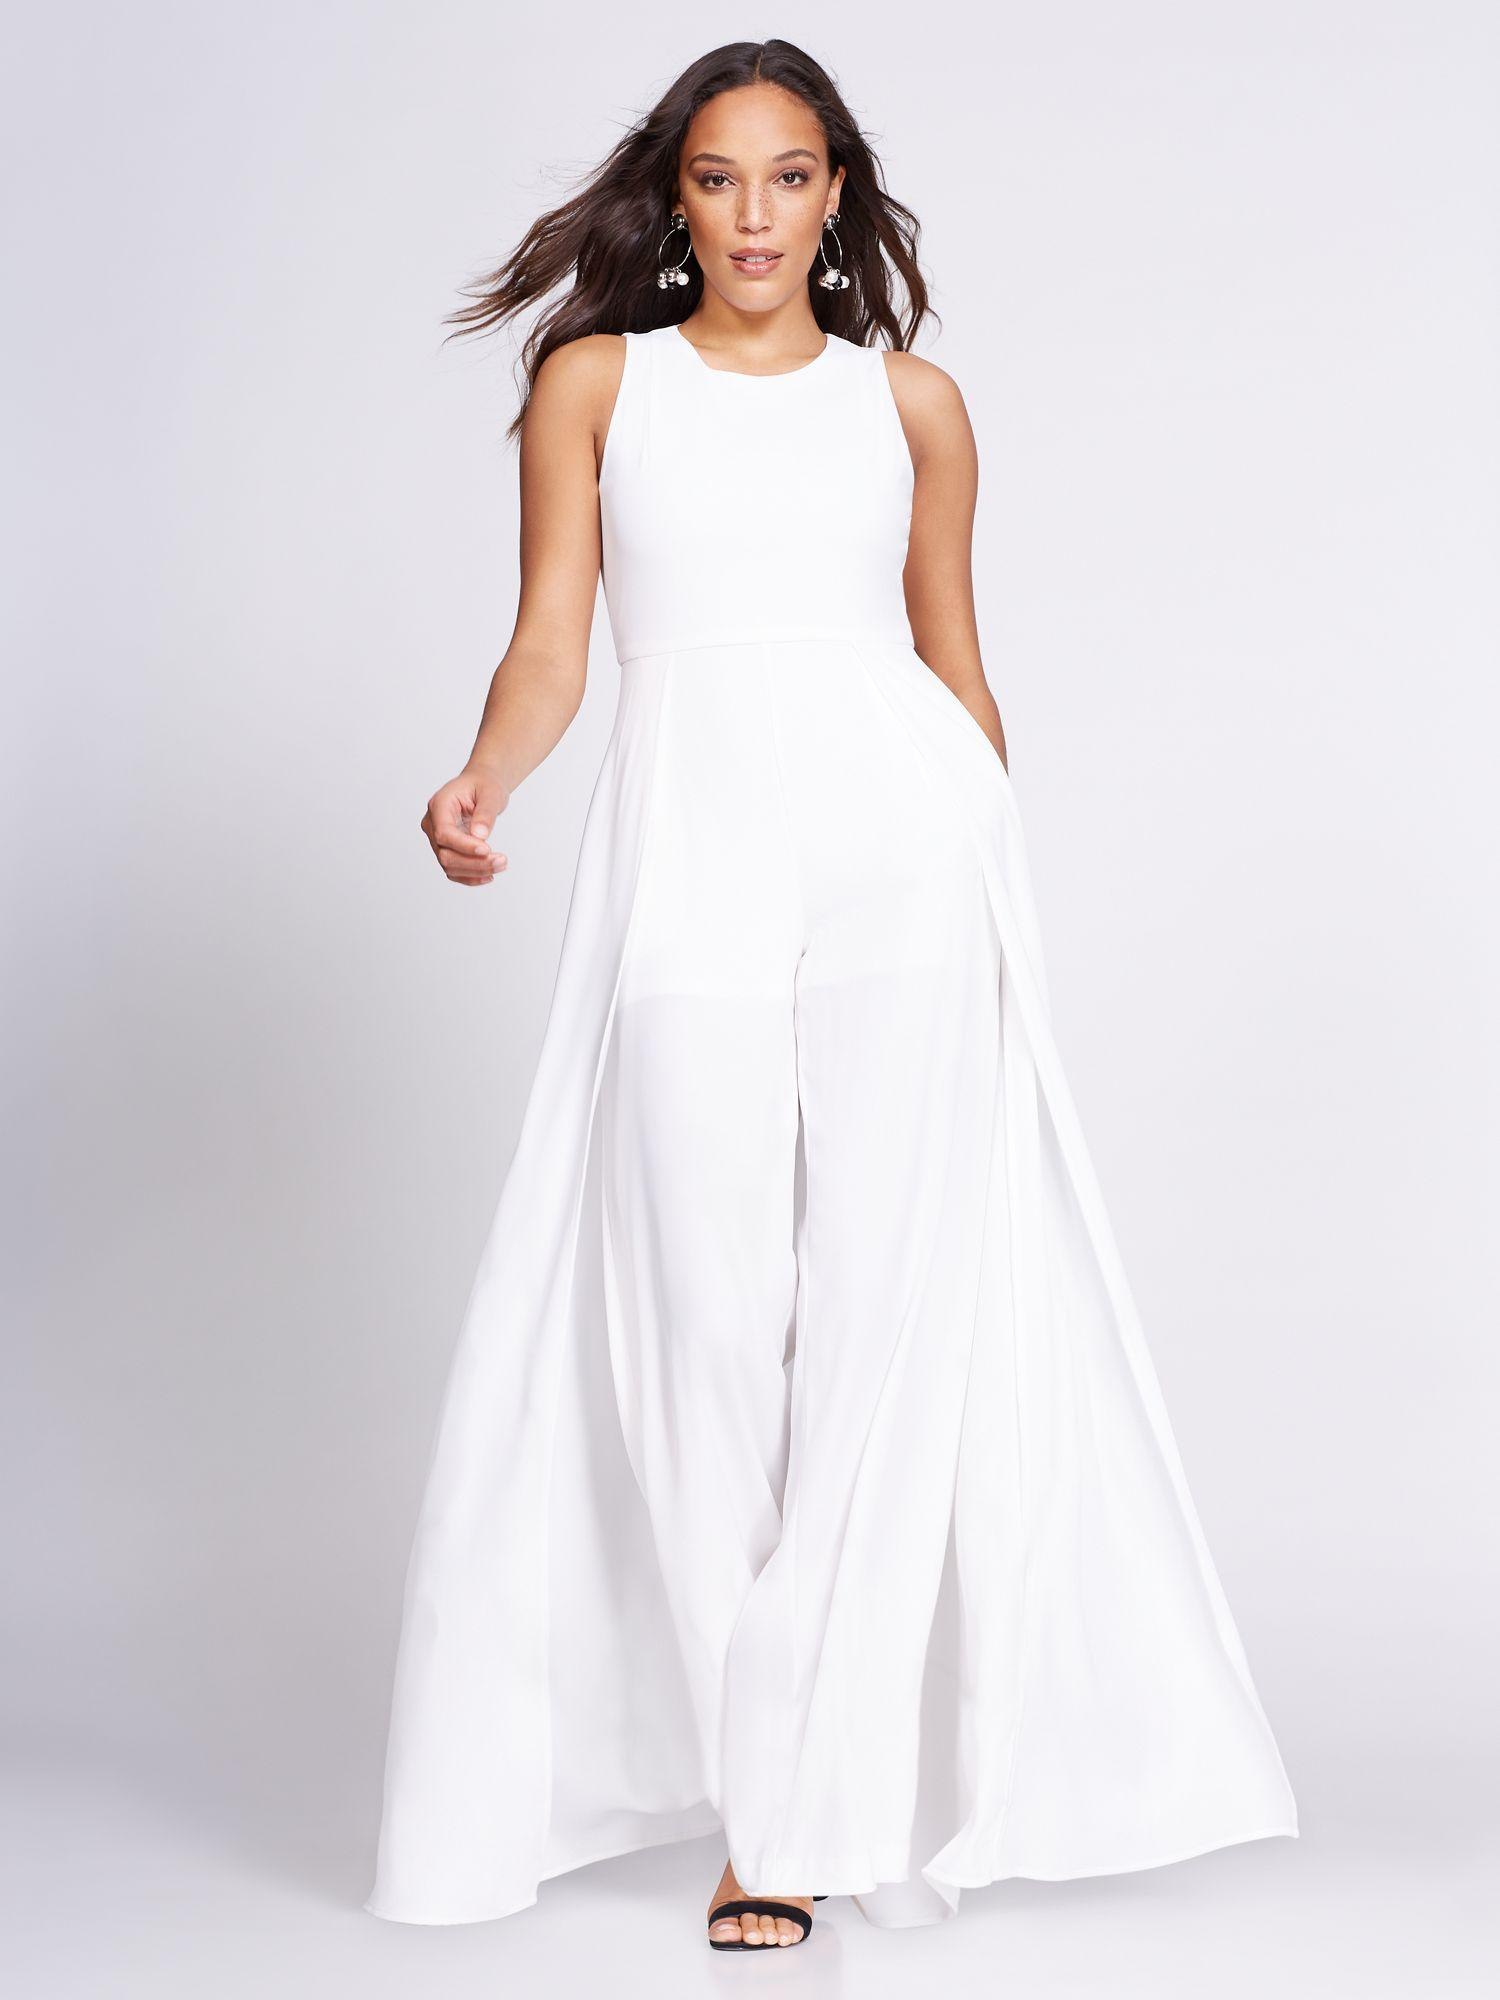 4cc6aabbe18 New York   Company. Women s White Gabrielle Union Collection - Overlay  Jumpsuit